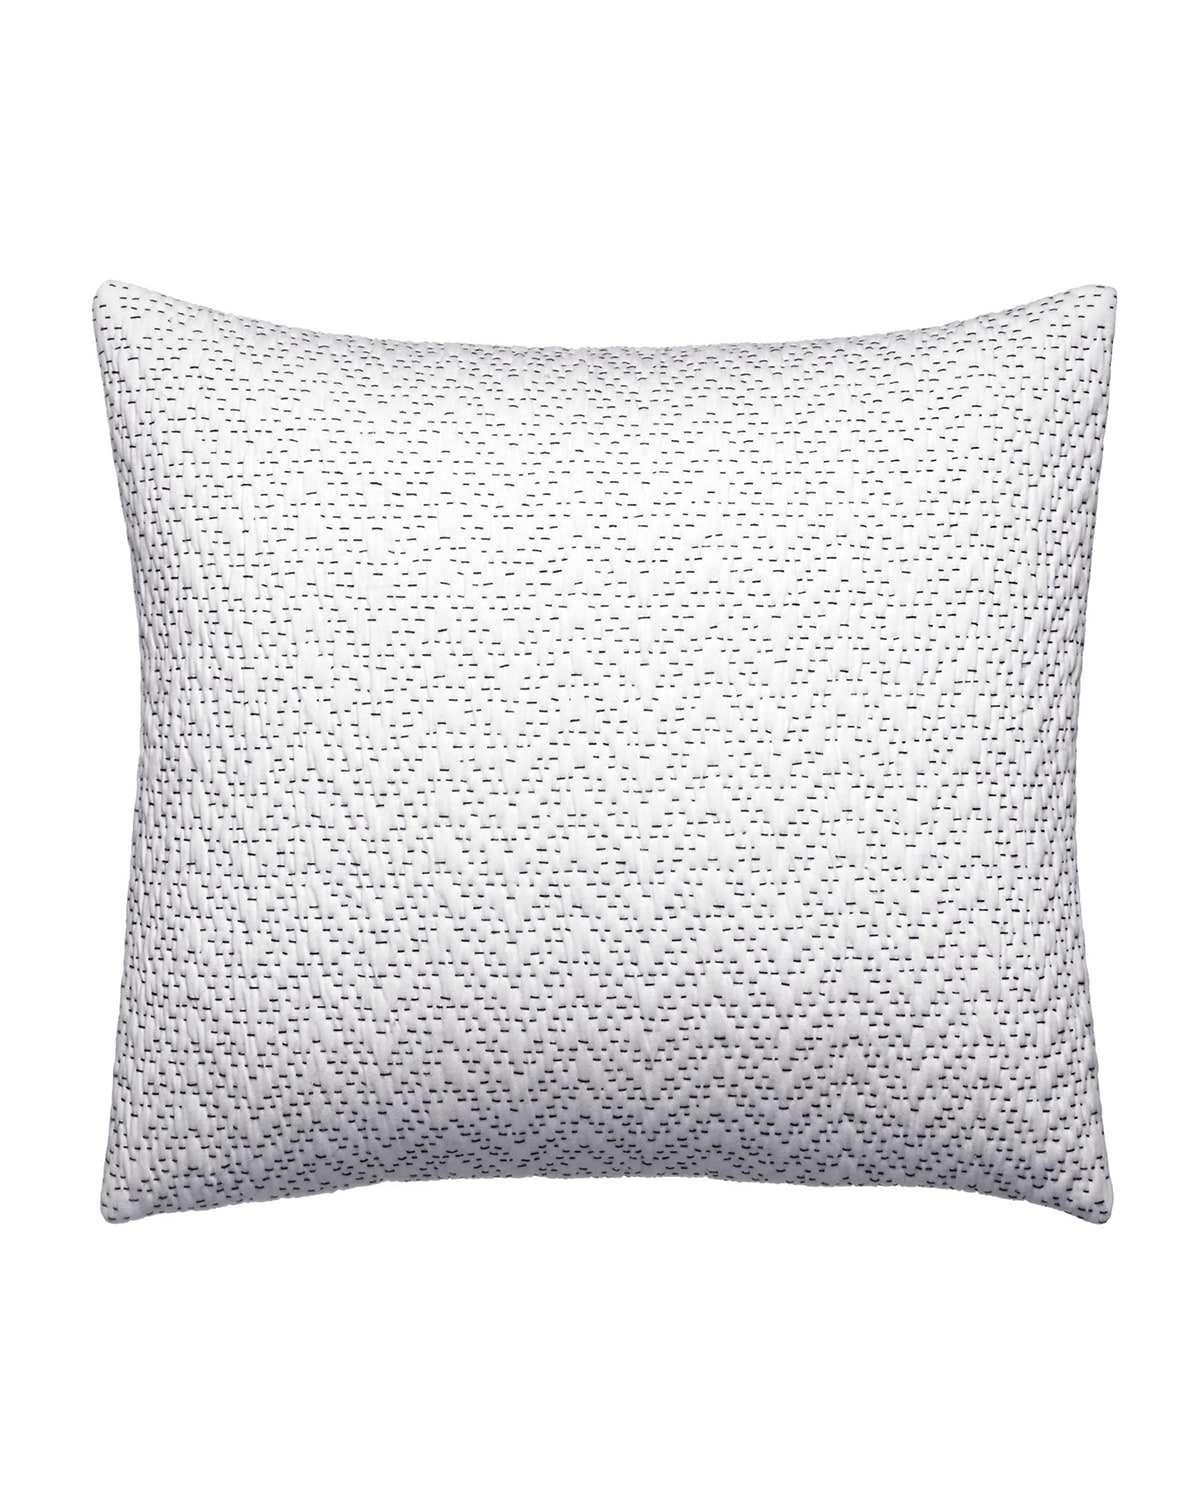 "Ink Botanical Zigzag Decorative Pillow, 12"" x 16"""